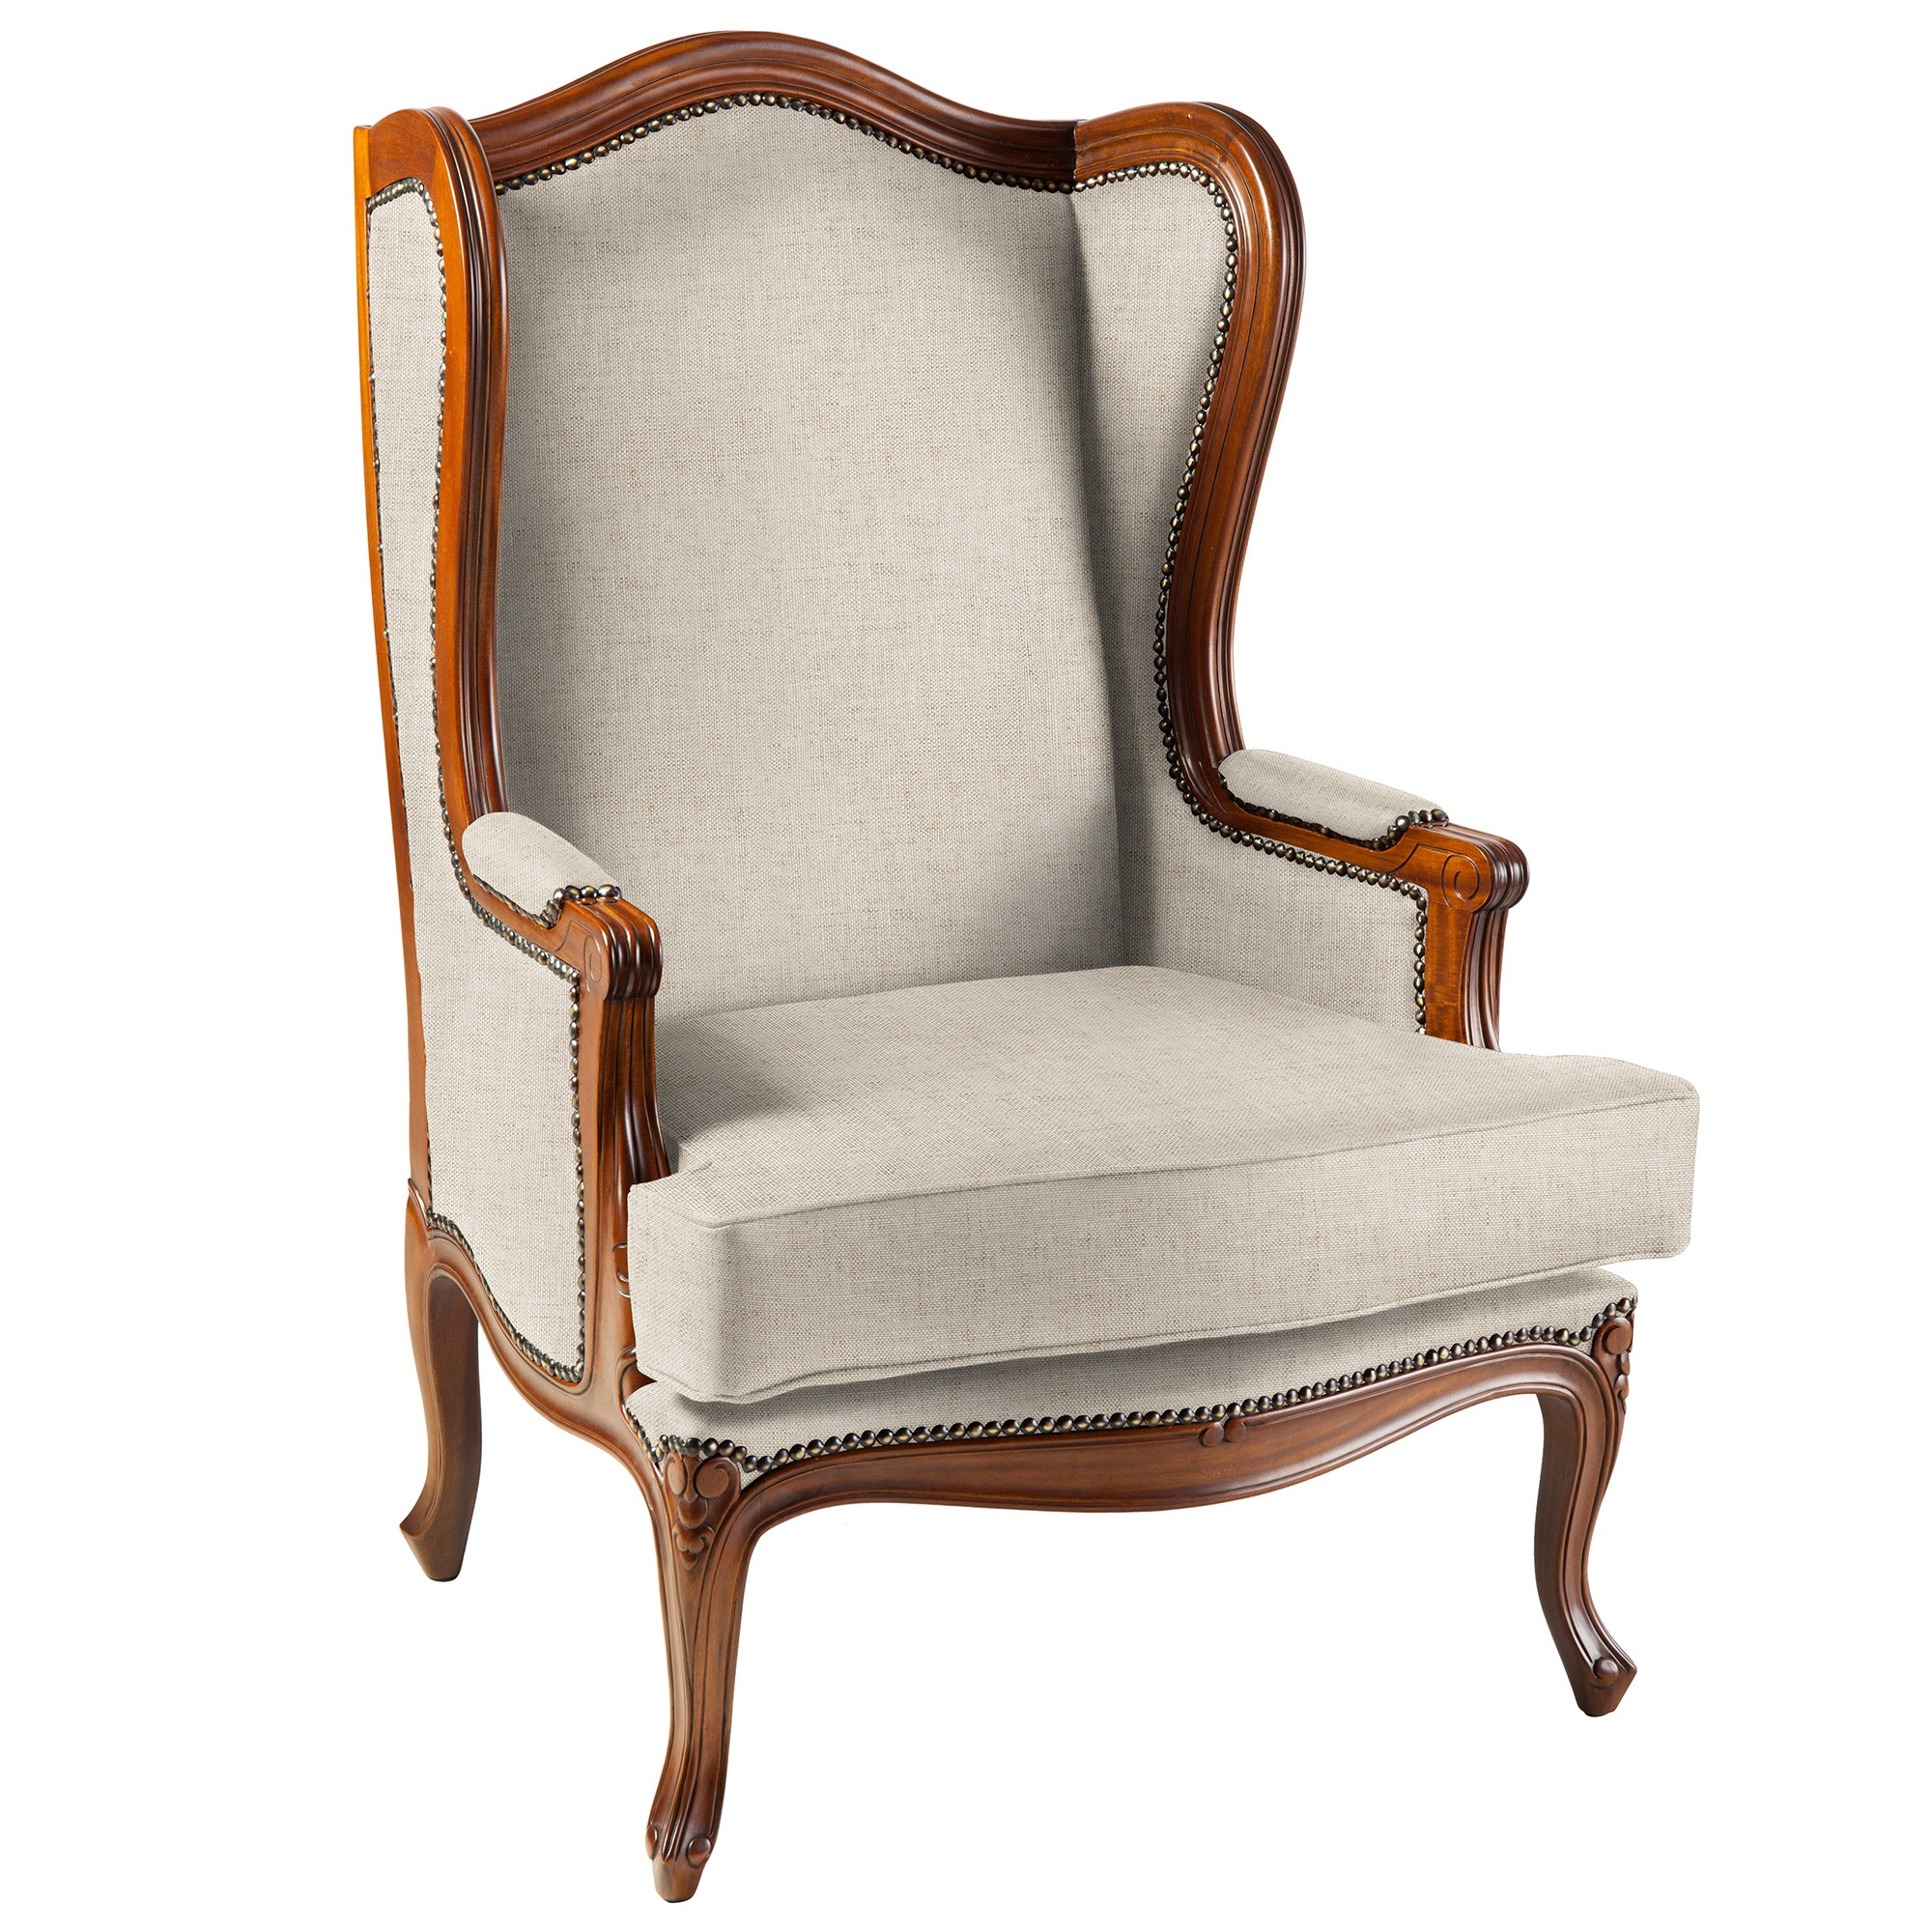 Sandringham Mahogany Timber & Fabric Wing Back Armchair